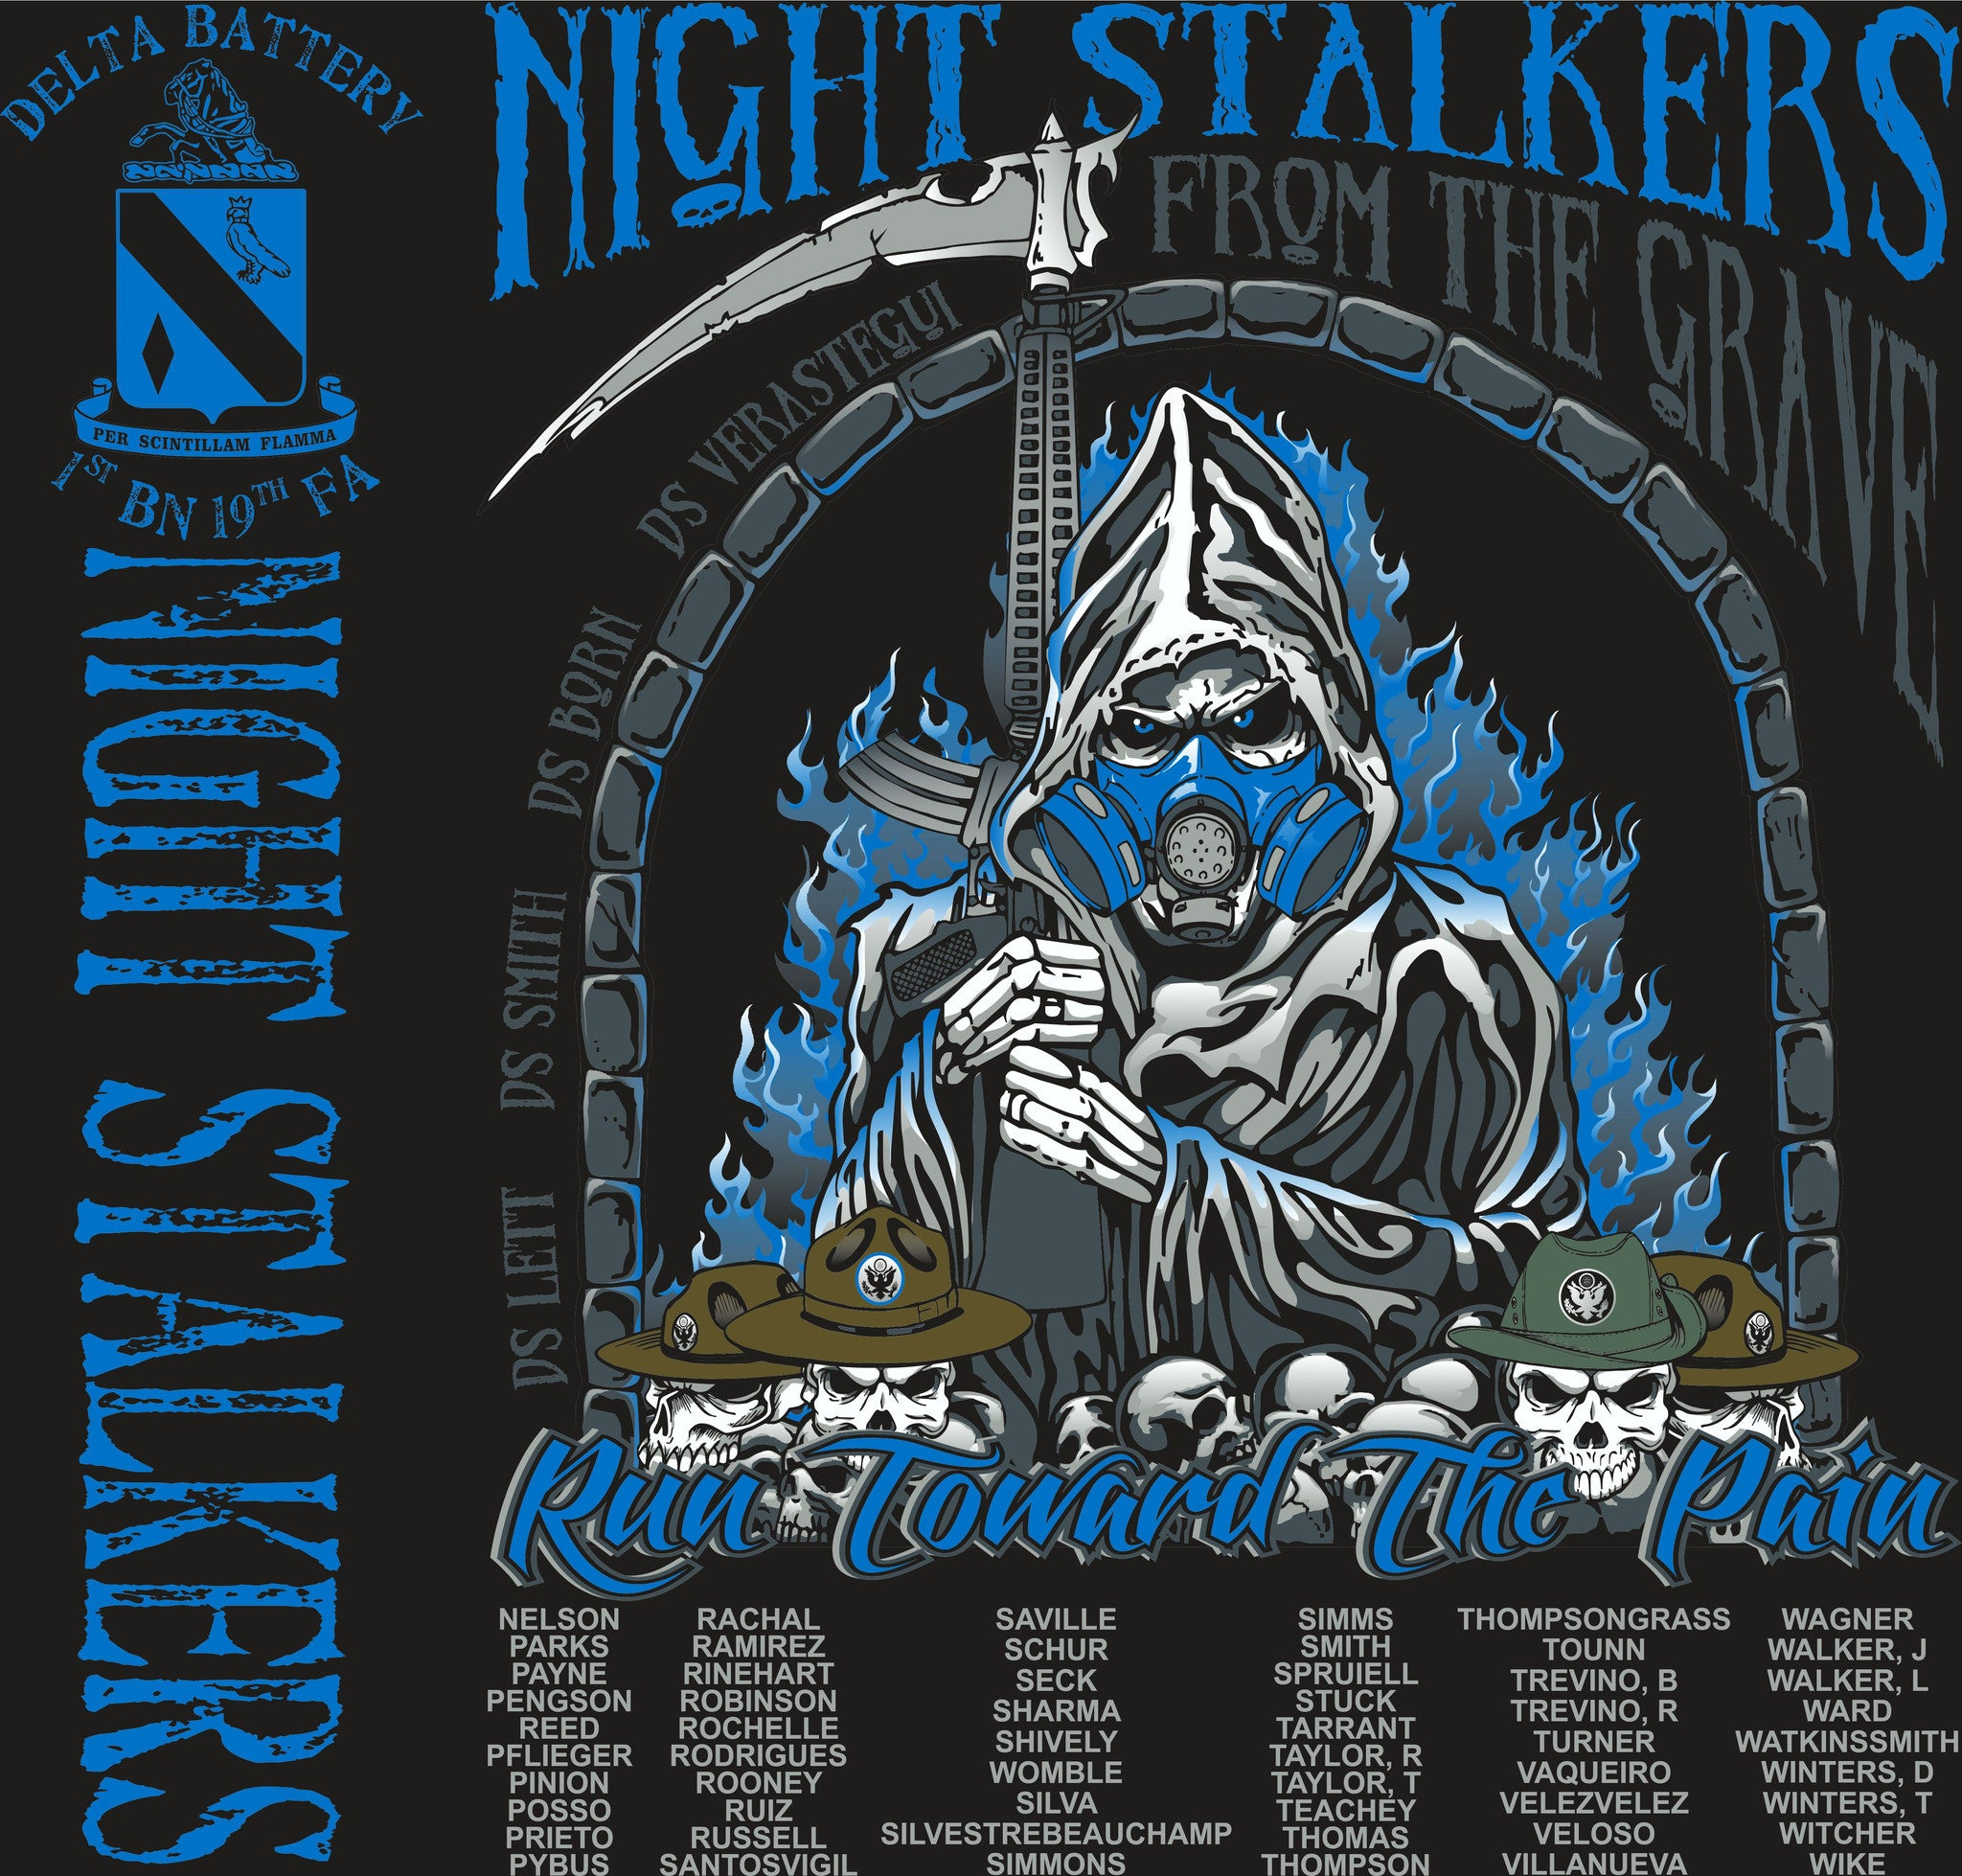 Platoon Shirts DELTA 1st 19th NIGHT STALKERS APR 2015